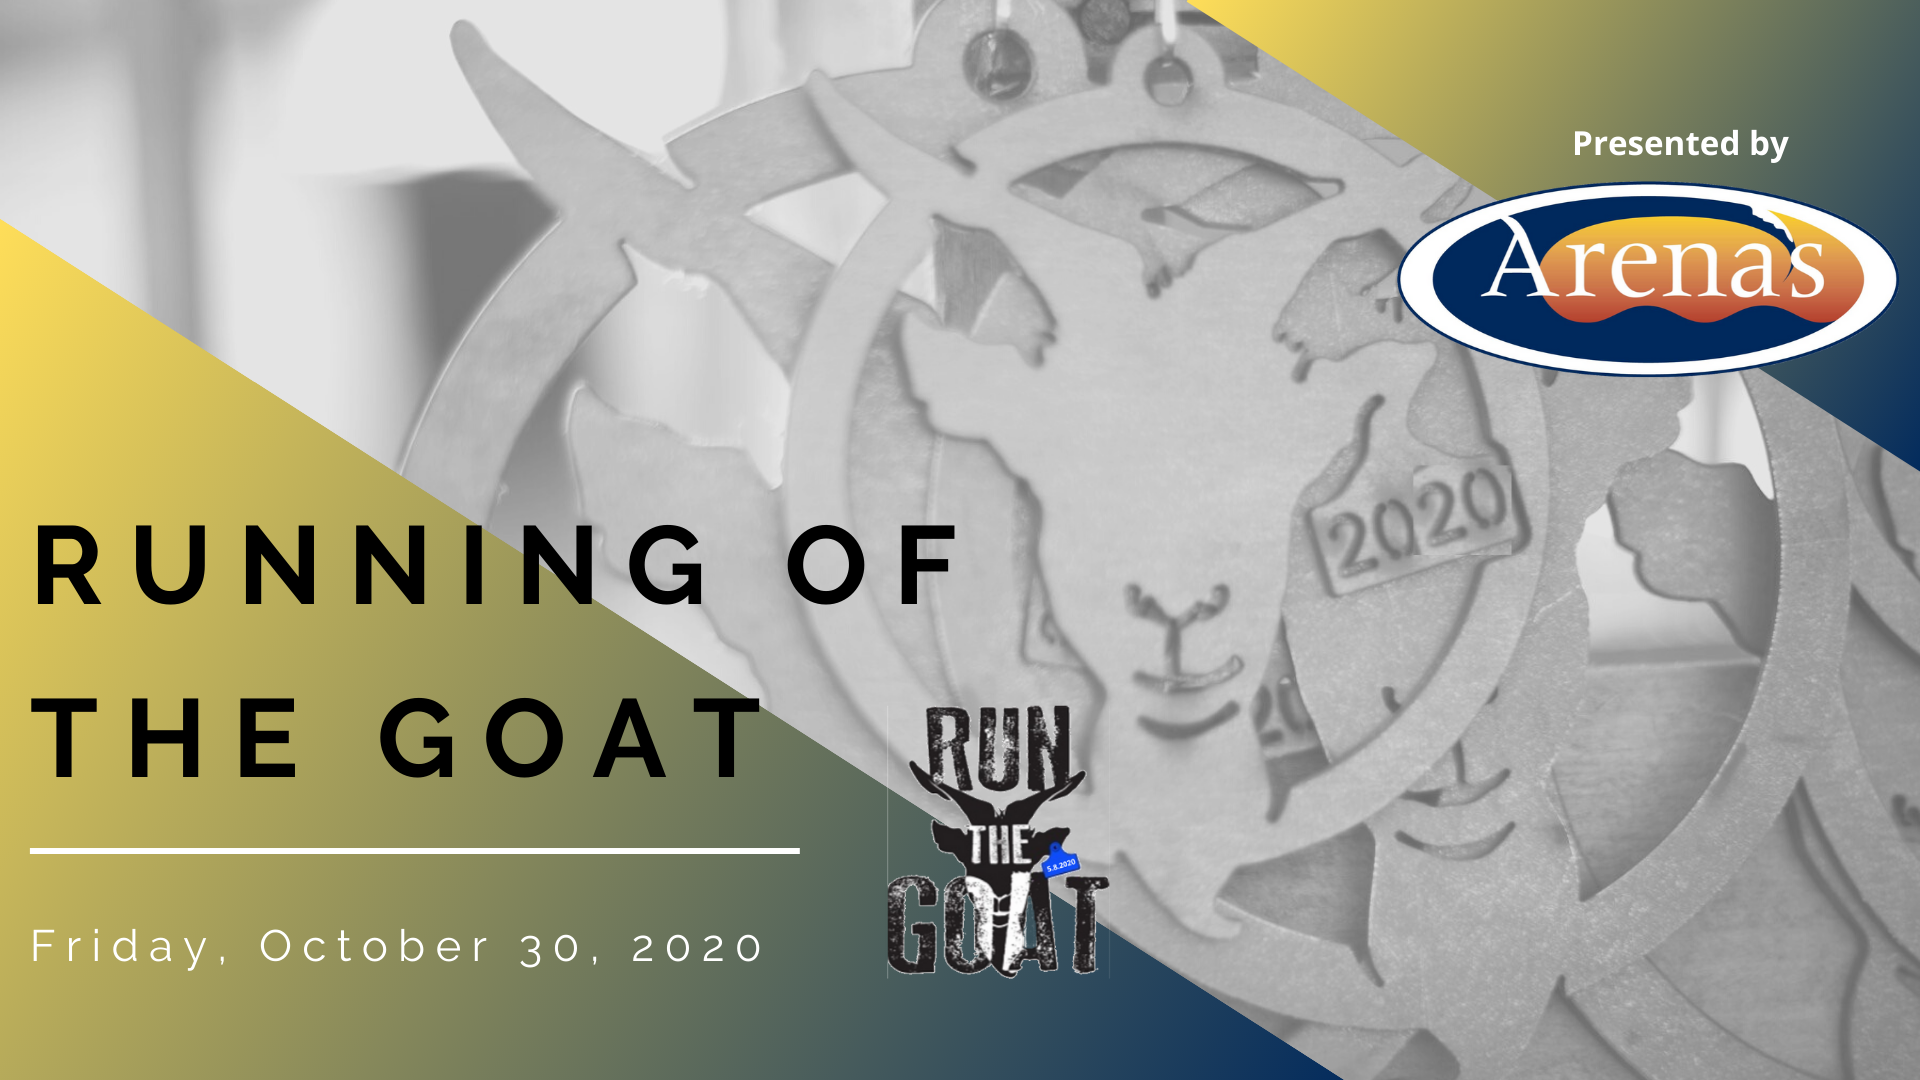 The 5th Annual Running of the Goat